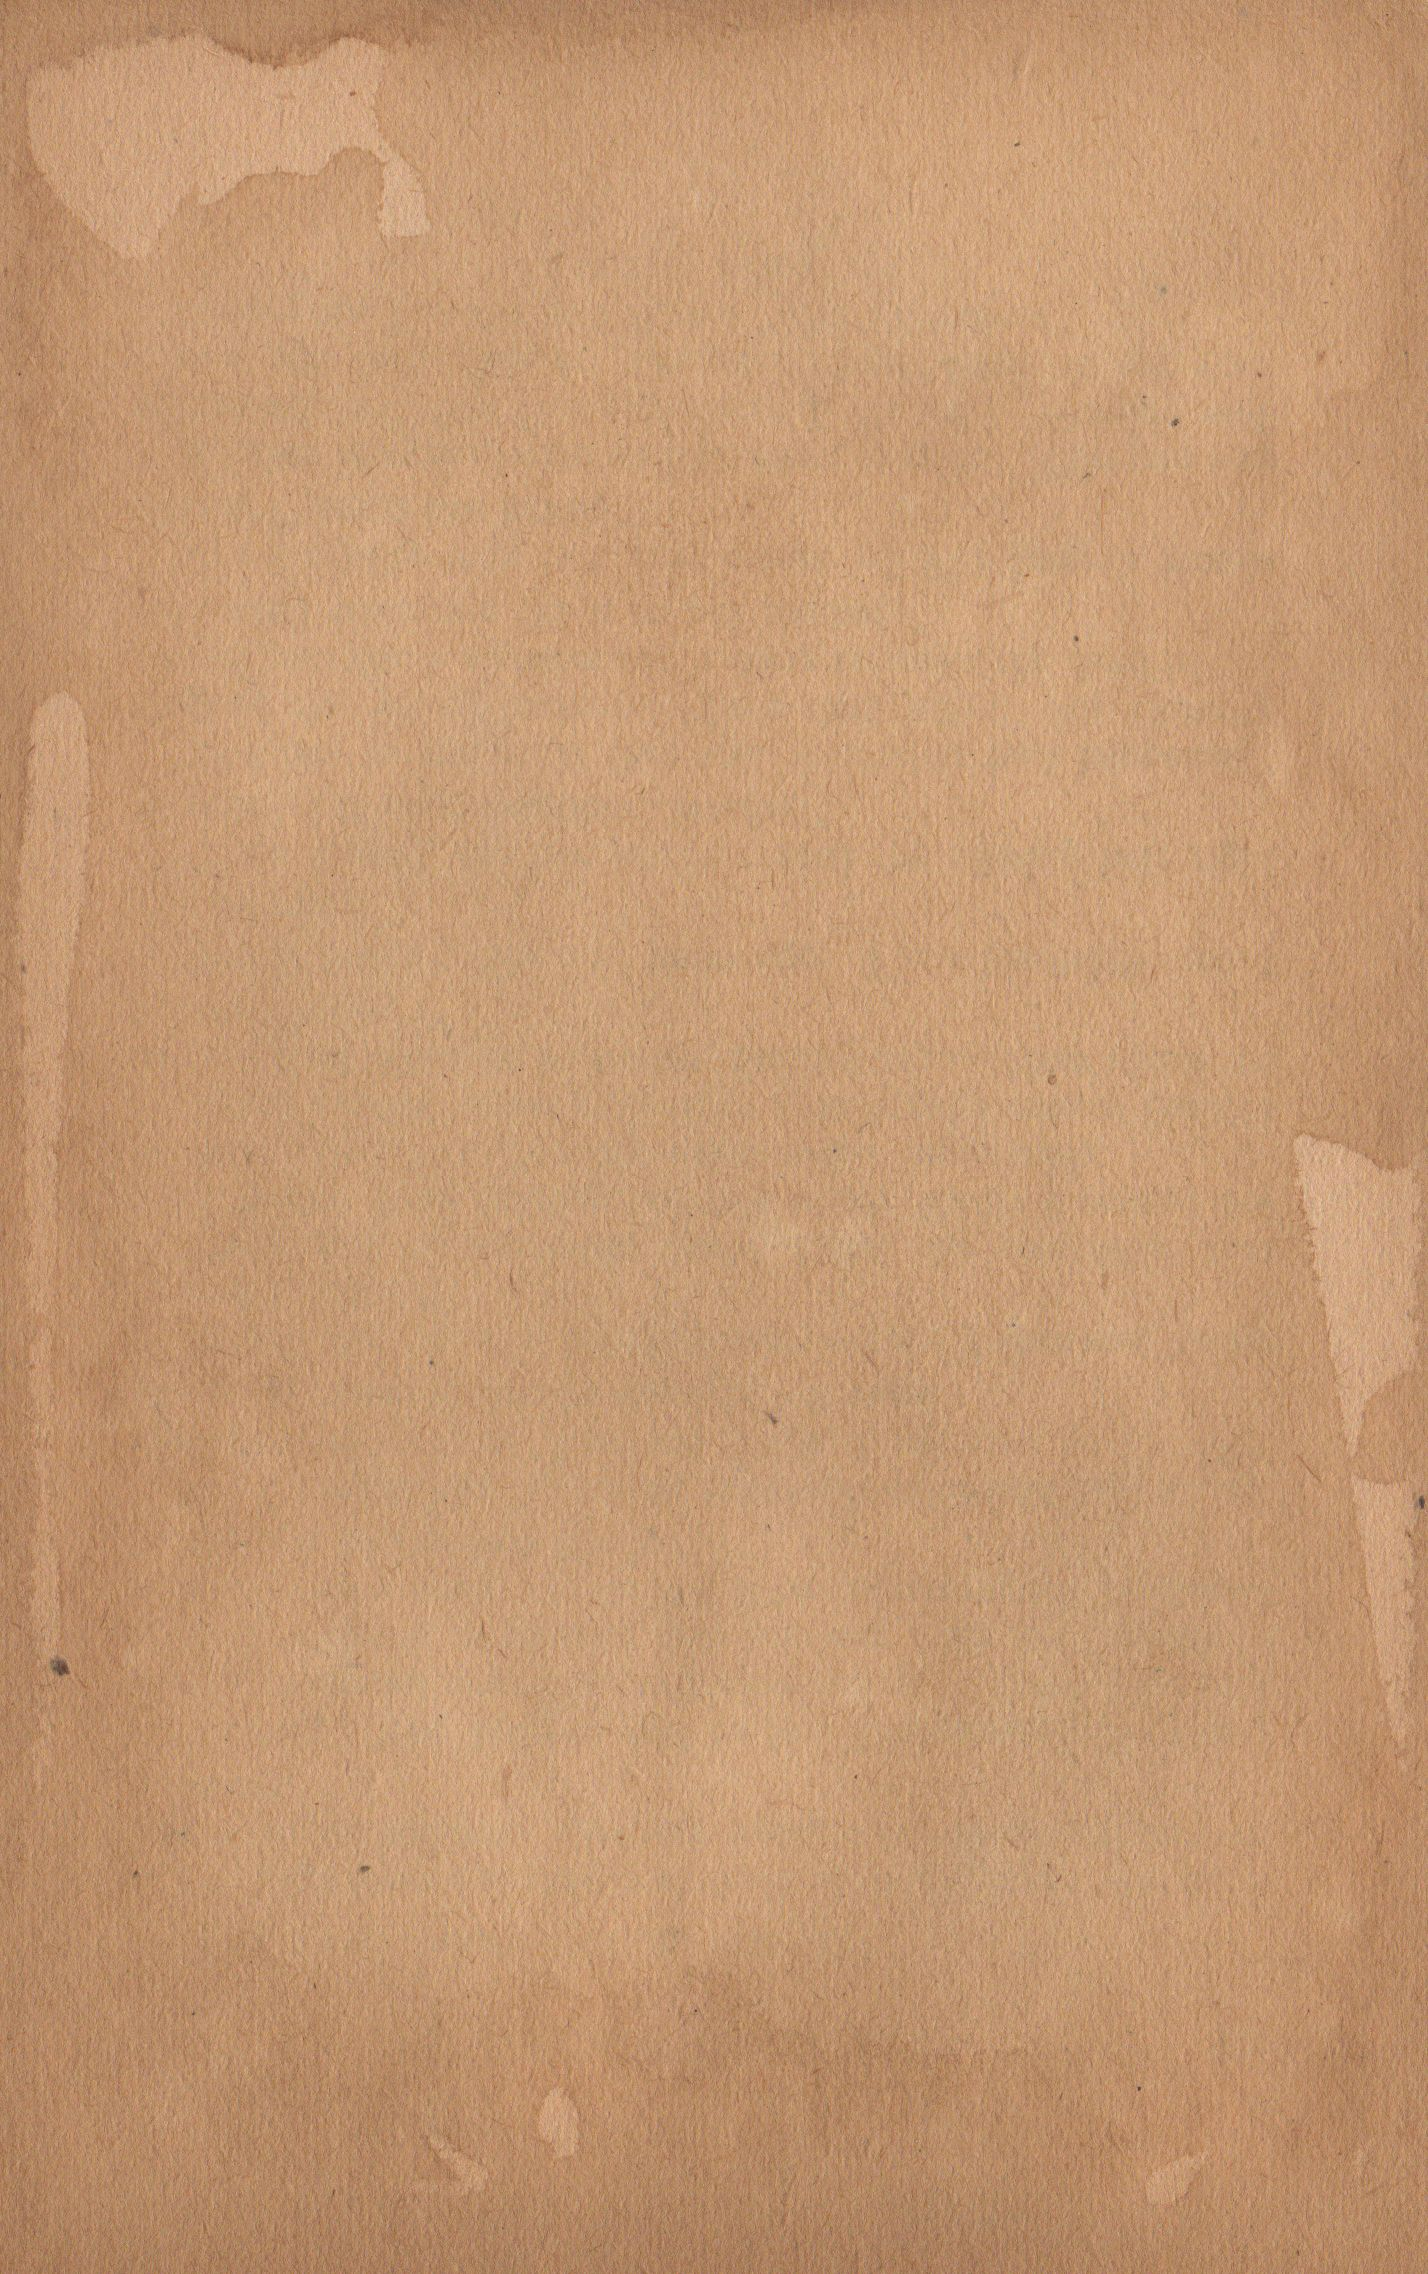 Free High Resolution Textures Lost And Taken Early 20th Century Paper Textures Paper Texture Free Paper Texture Vintage Paper Textures